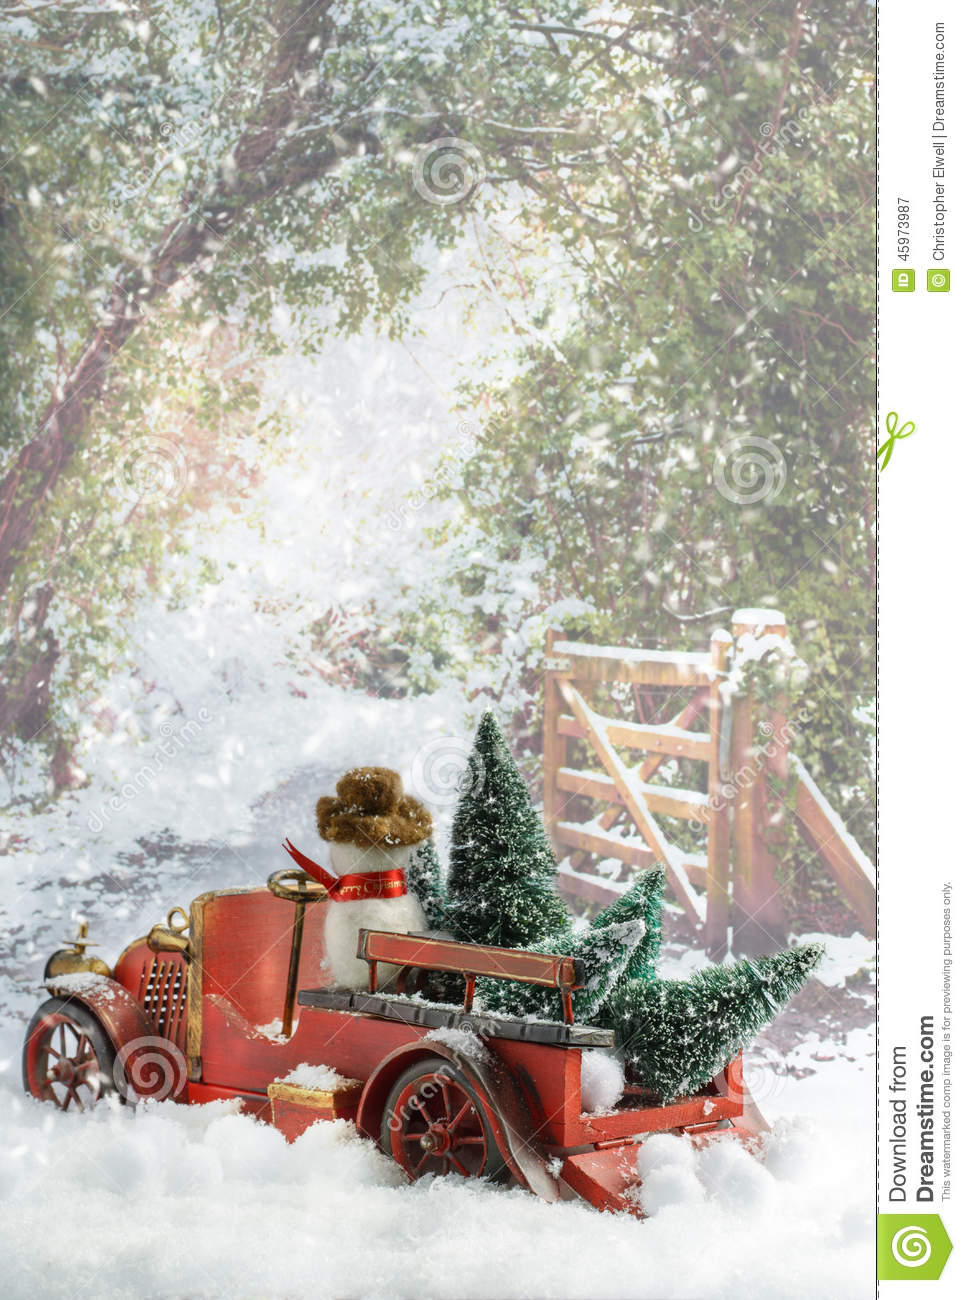 Truck Carrying Christmas Trees Stock Image Image Of